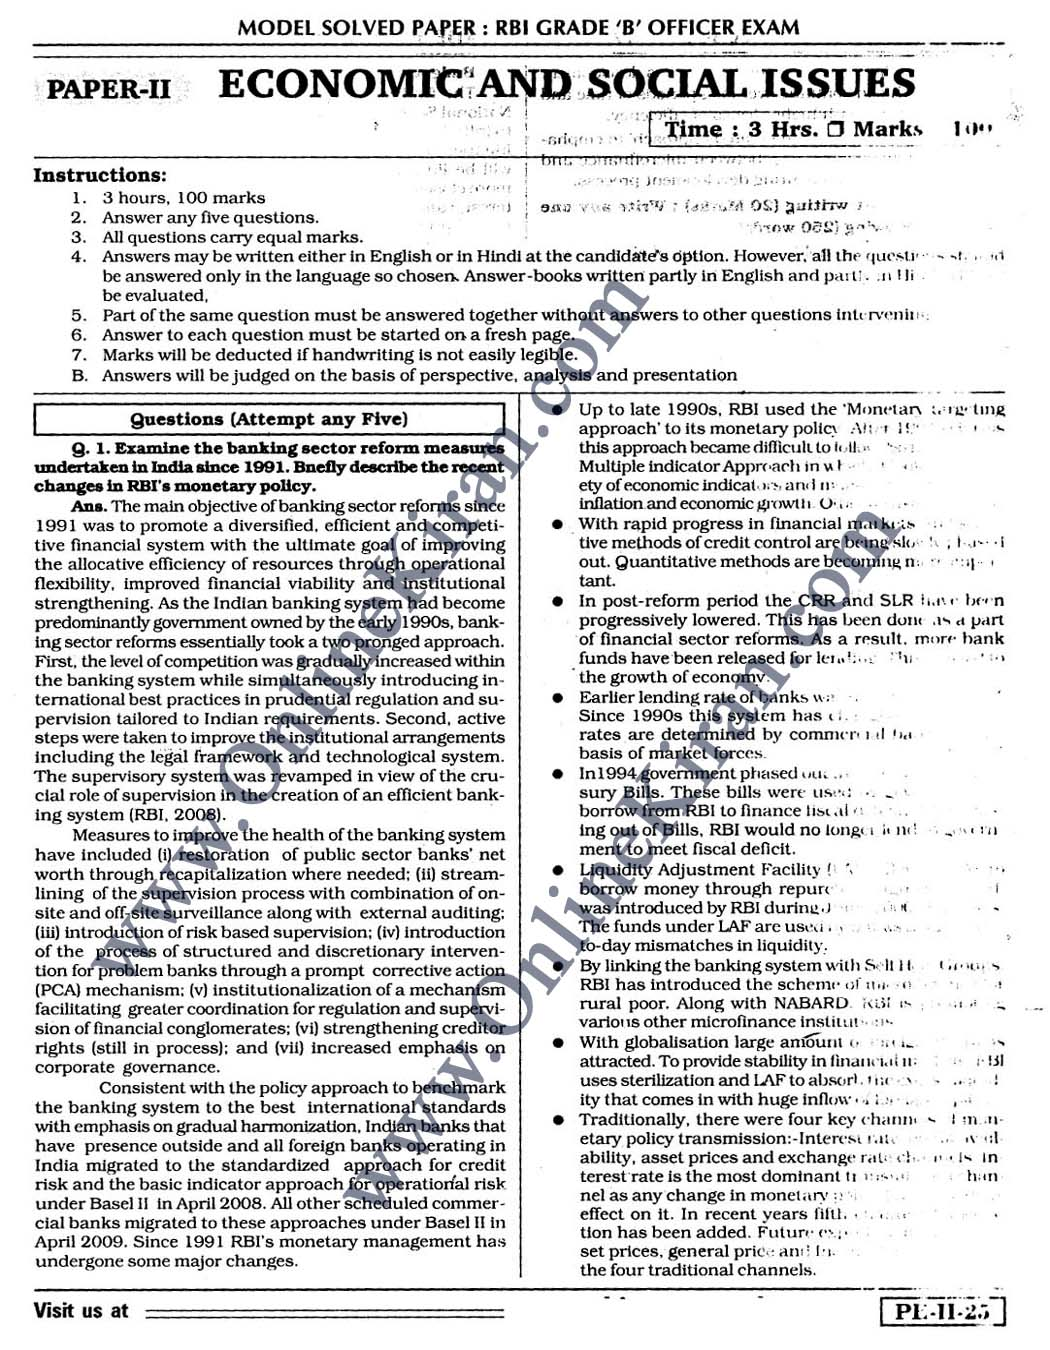 rbi research officer question paper Rbi grade b officer syllabus phase i & ii 2015 pdf rbi grade b officer question paper pdf: junior research vacancies apply online at drdogovin.